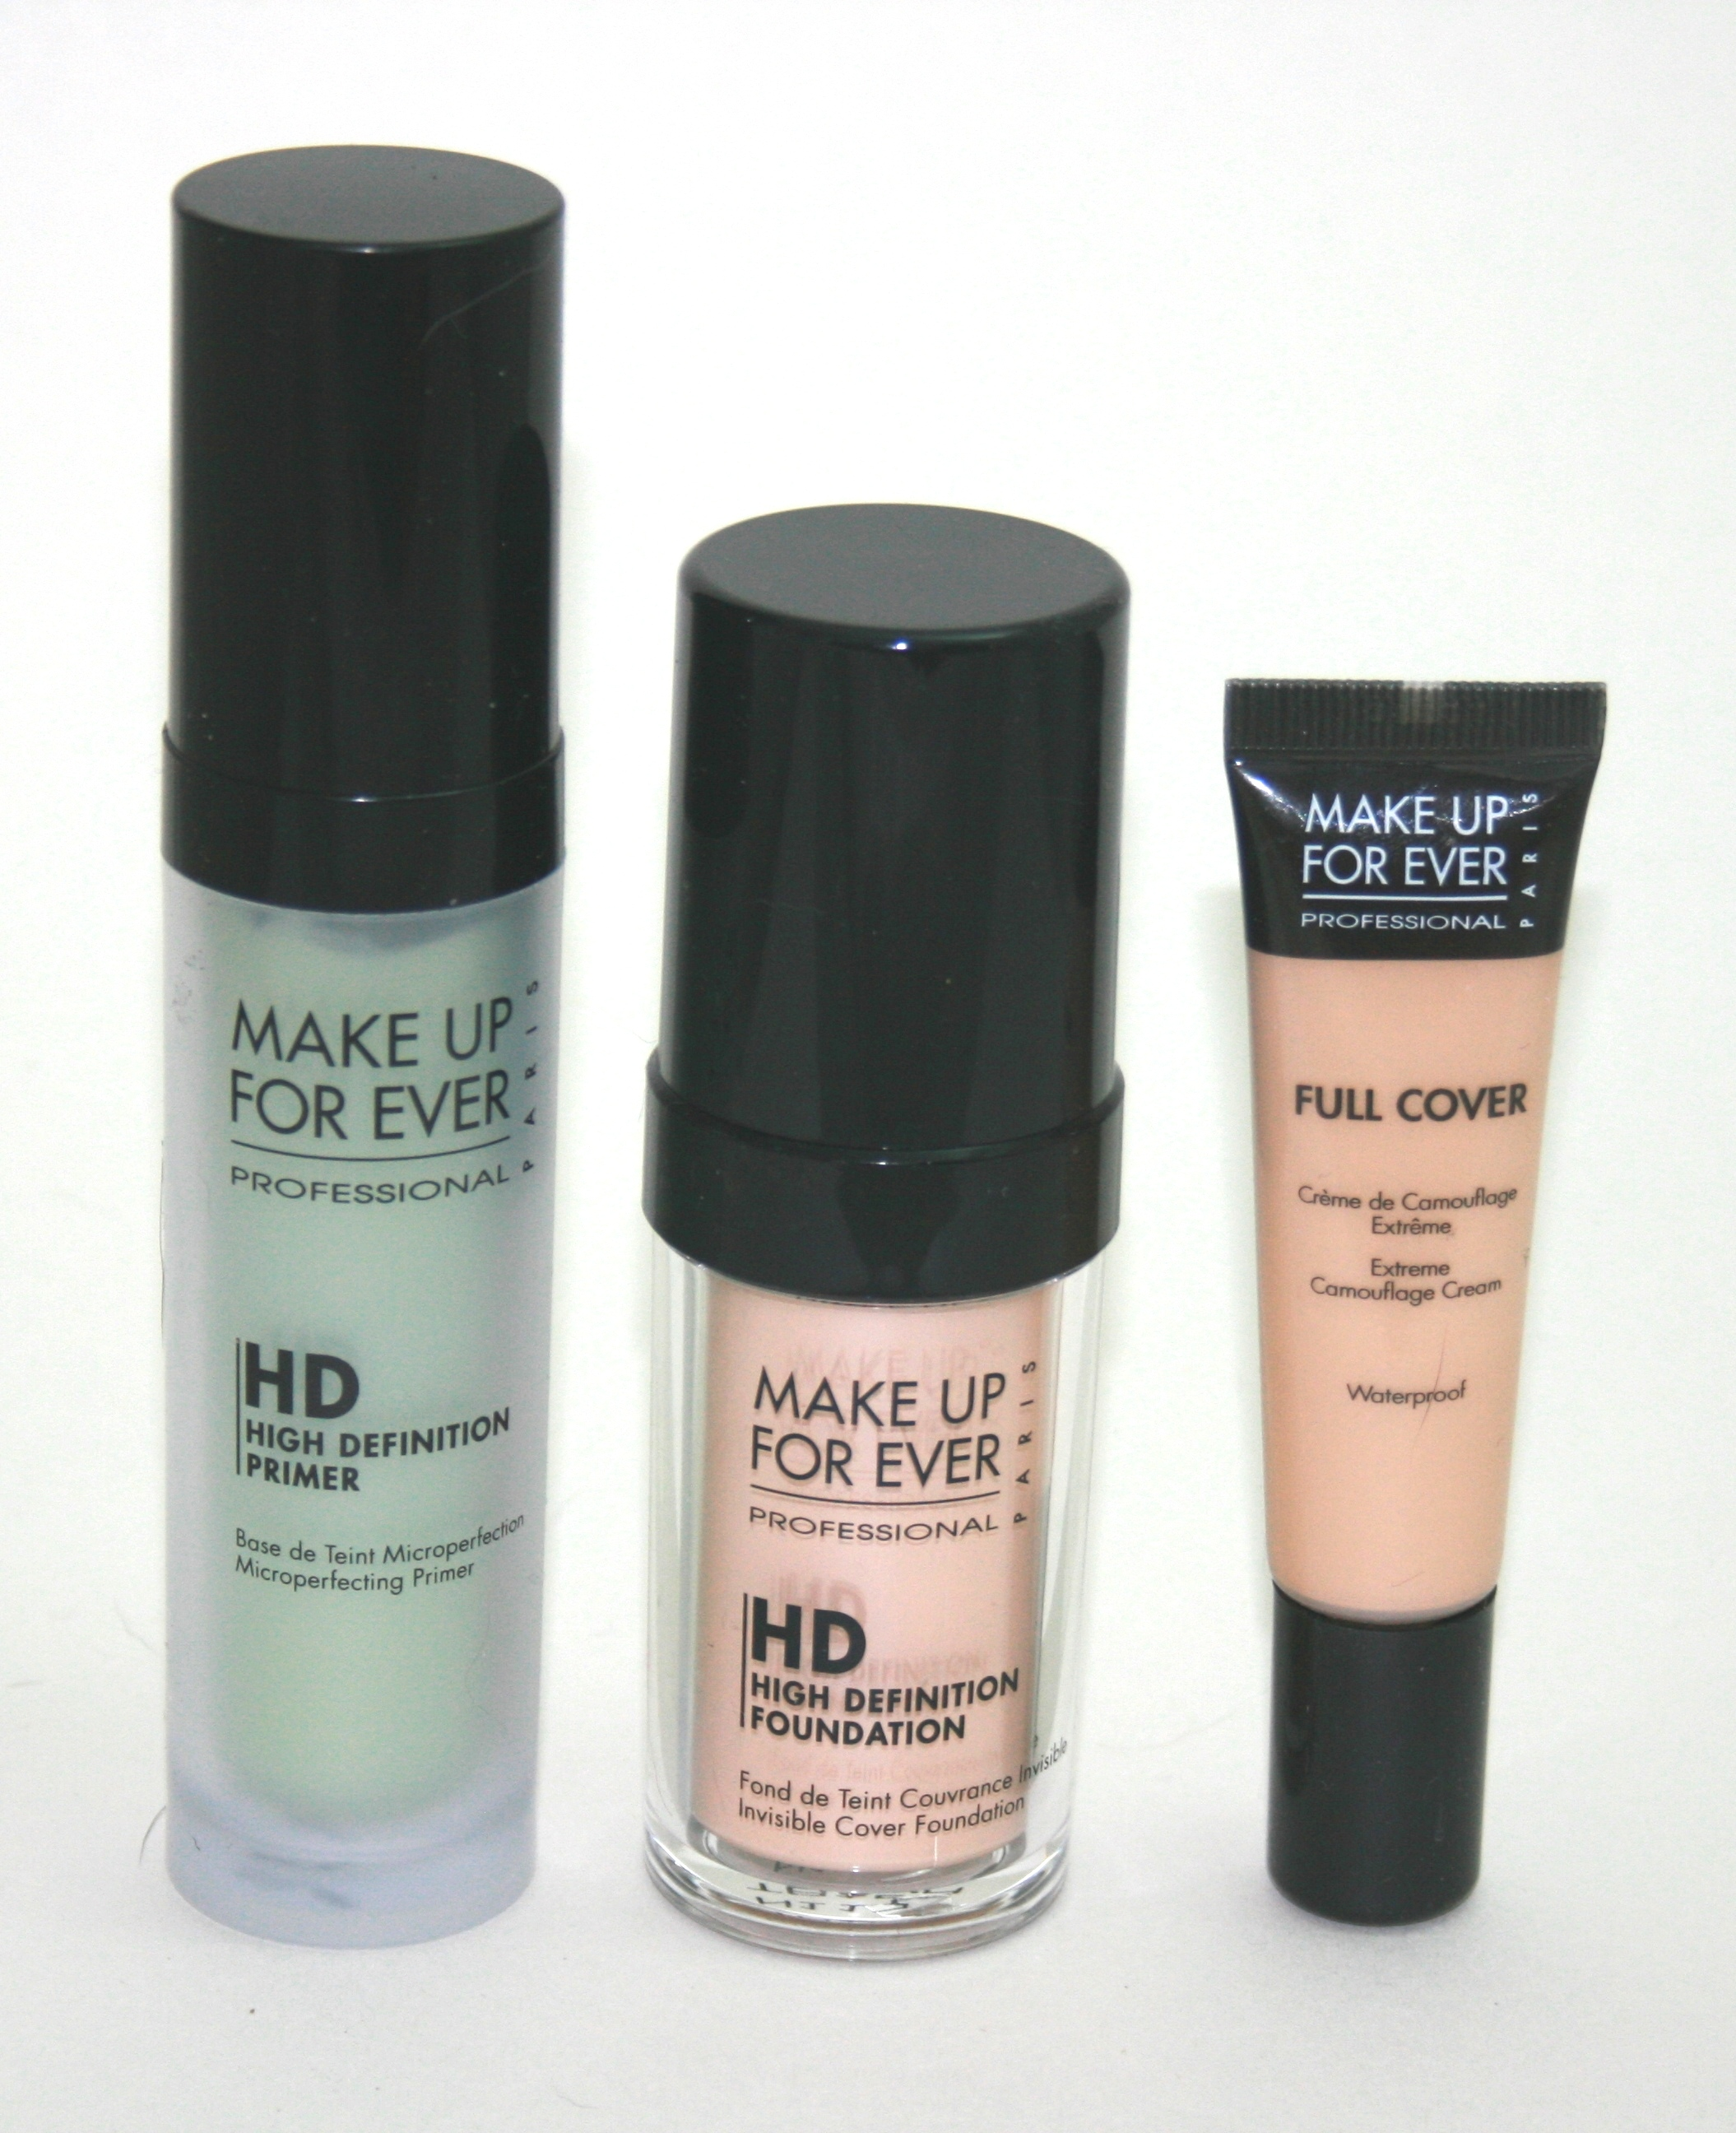 Find great deals on eBay for makeup forever samples. Shop with confidence.